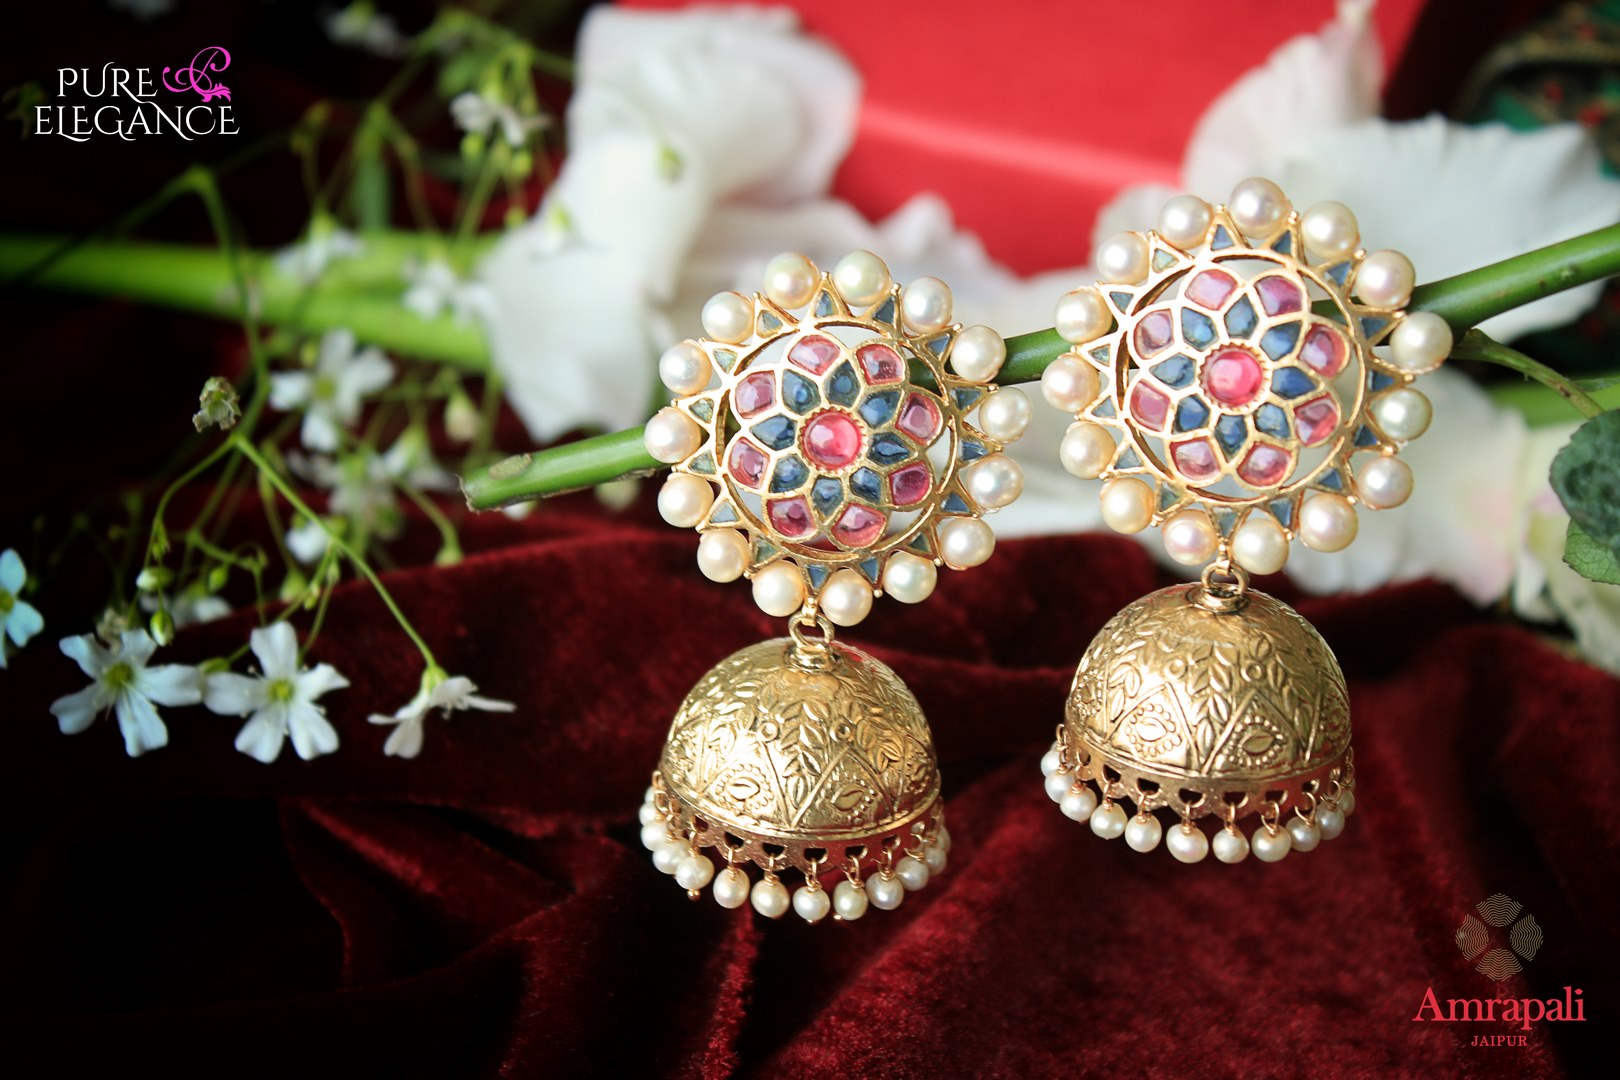 Buy silver gold plated glass jhumki earrings online in USA from Amrapali. Stand out amongst all with these exquisite earrings at weddings and special occasions. Shop more such gorgeous Indian silver gold plated jewellery in USA at Pure Elegance, you can visit our exclusive fashion store in USA or shop online.-flatlay